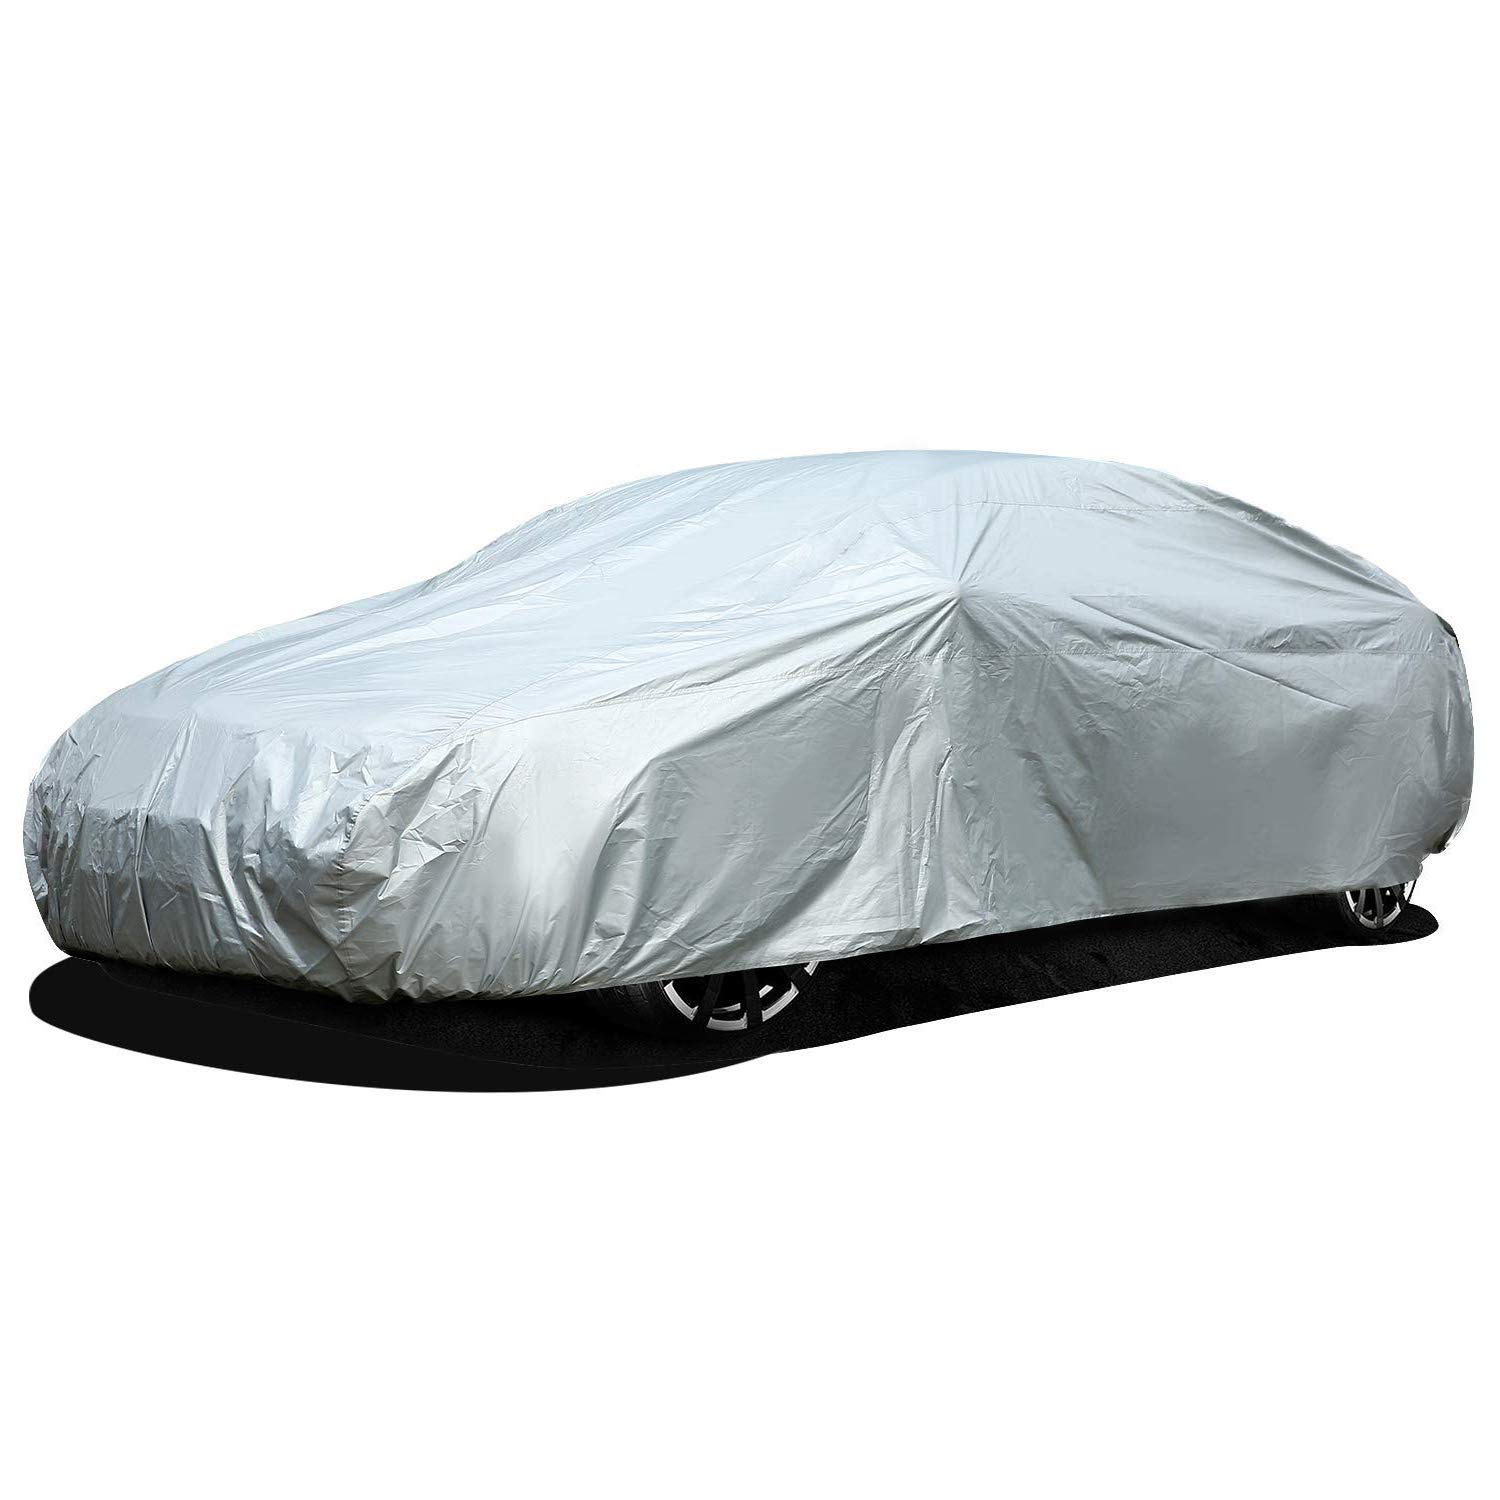 TanYoo Cars Car Cover 210/'/'75/'/'55/'/' Fits Sedan XL Up to 210/'/' 100/% Waterproof Non-Woven Fabric Soft Breathable Auto Cover Protect from UV Rain Wind Snow Dirt Dust Moisture Corrosion 3 Layers